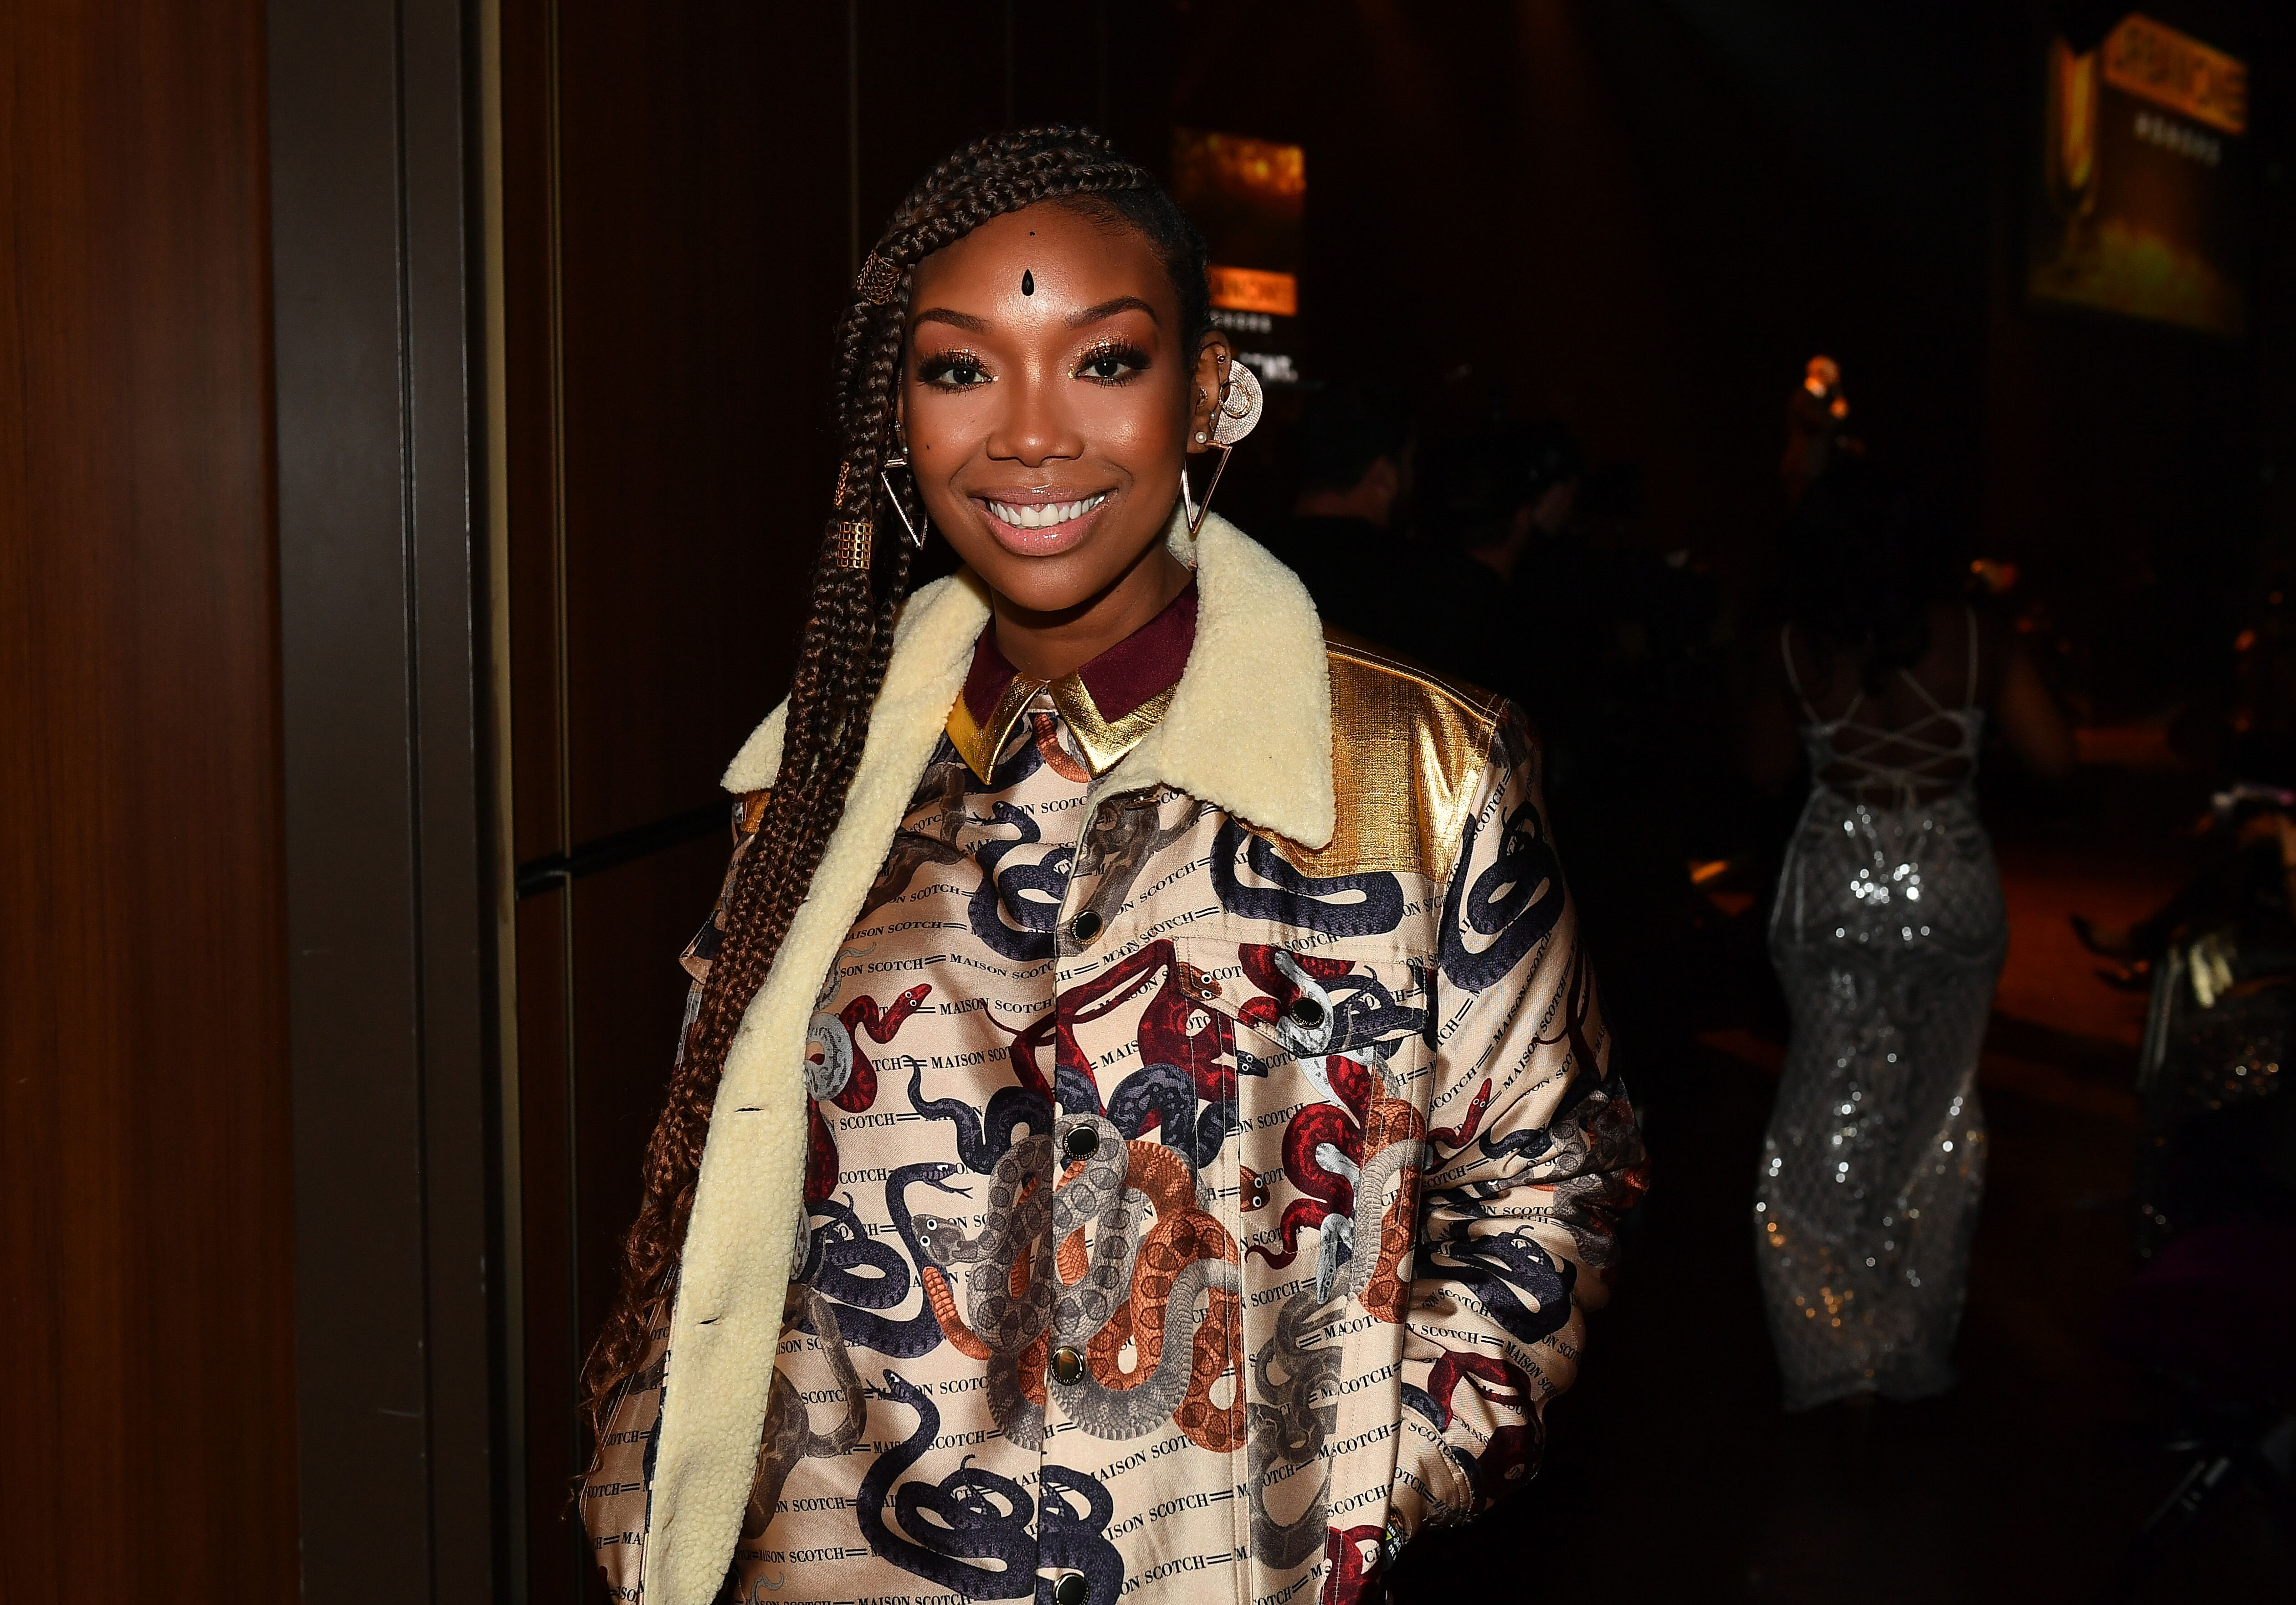 Brandy at the 2019 Urban One Honors in December 2019 | Source: Getty Images